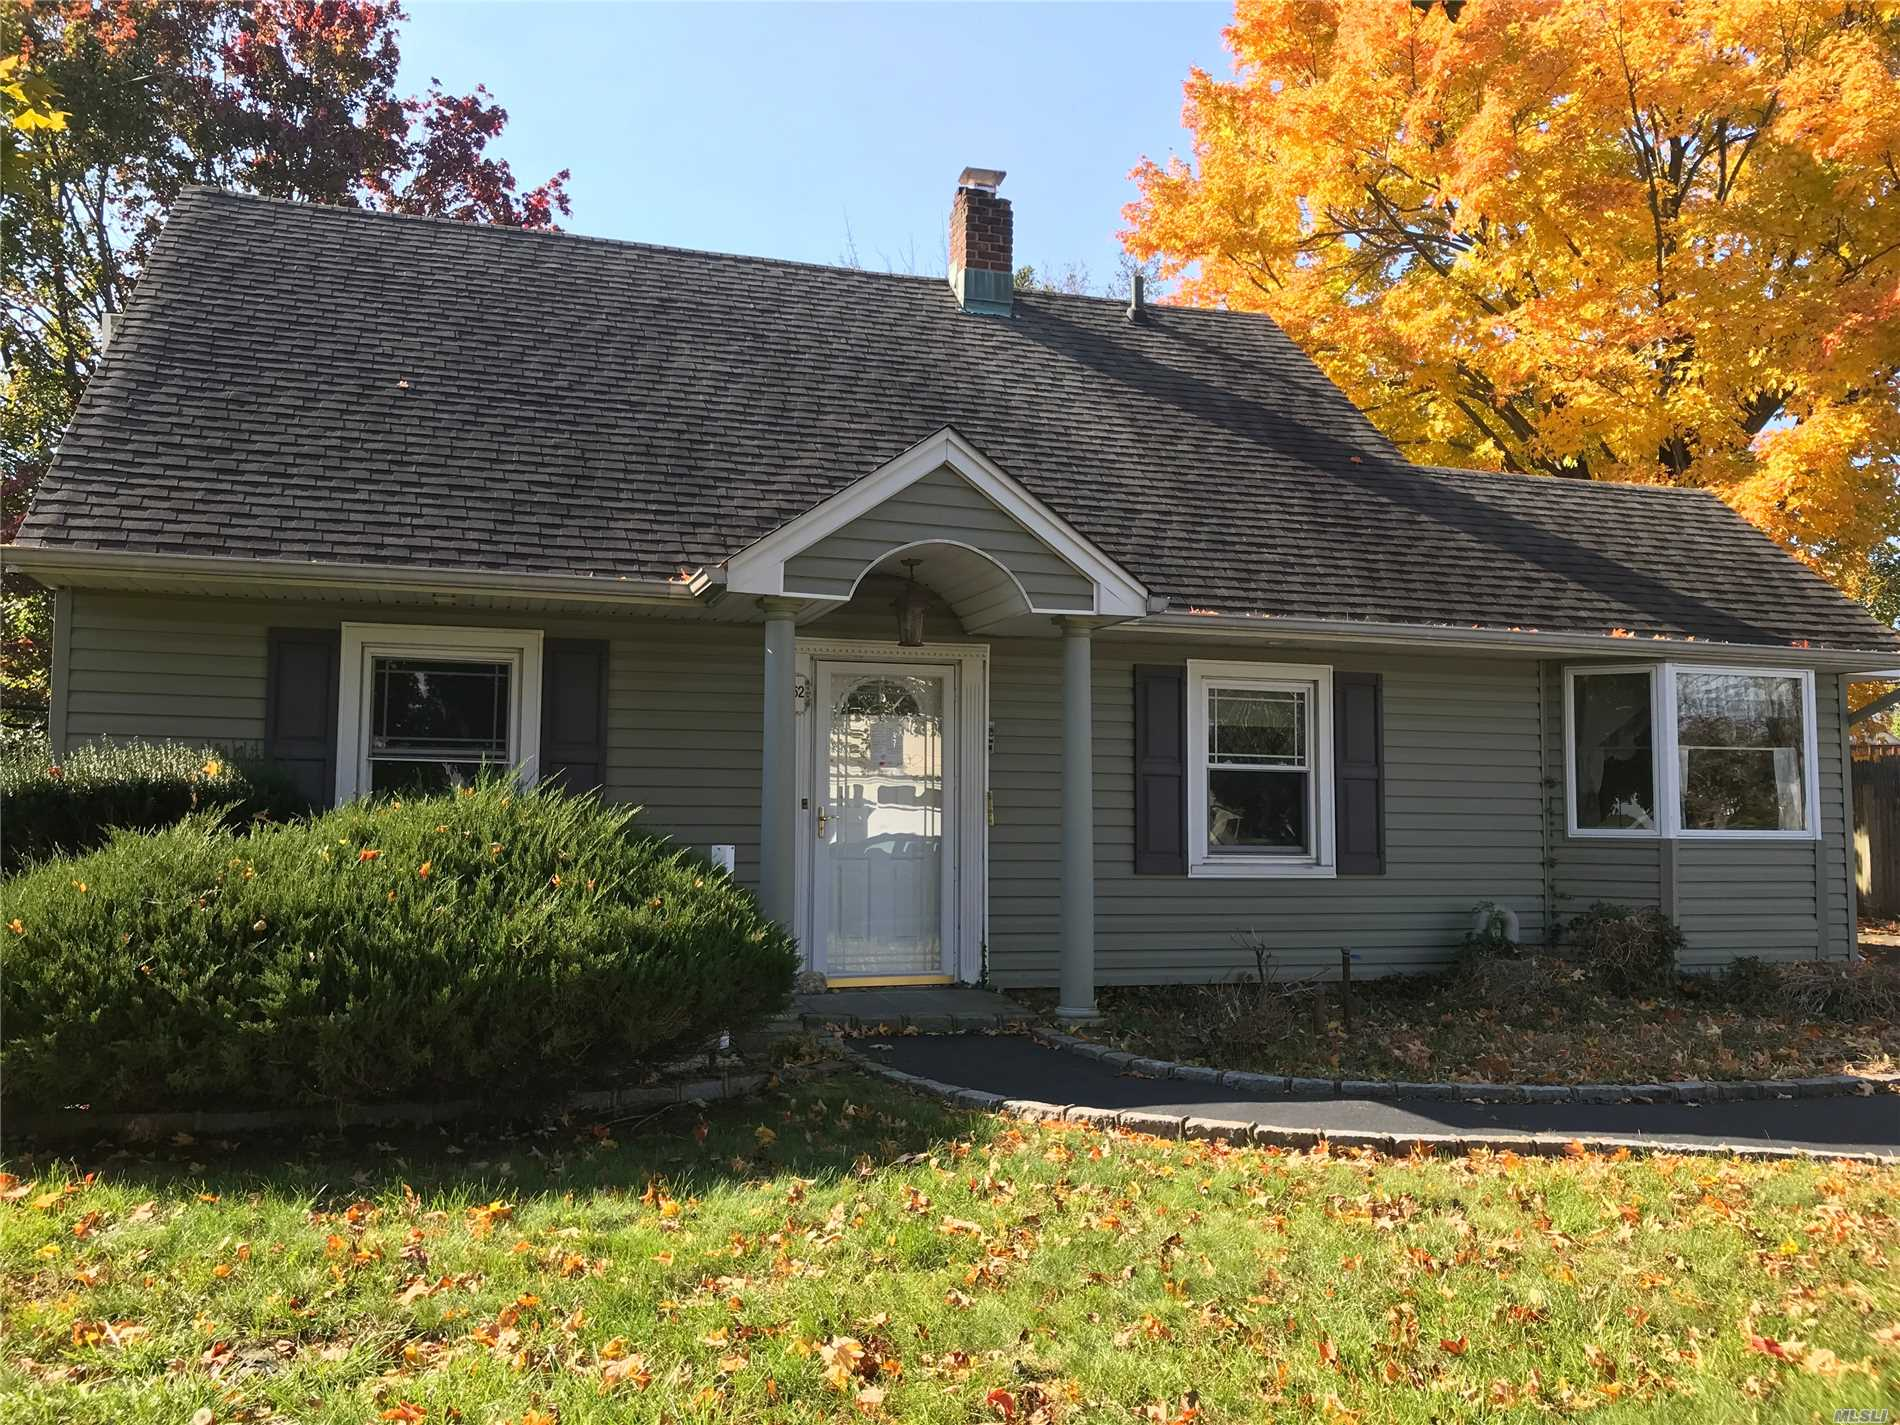 Property Is Sold In An As-Is Condition With No Access To House. All Information Deemed Reliable But Not Guaranteed. Buyer Have To Verify All Information.